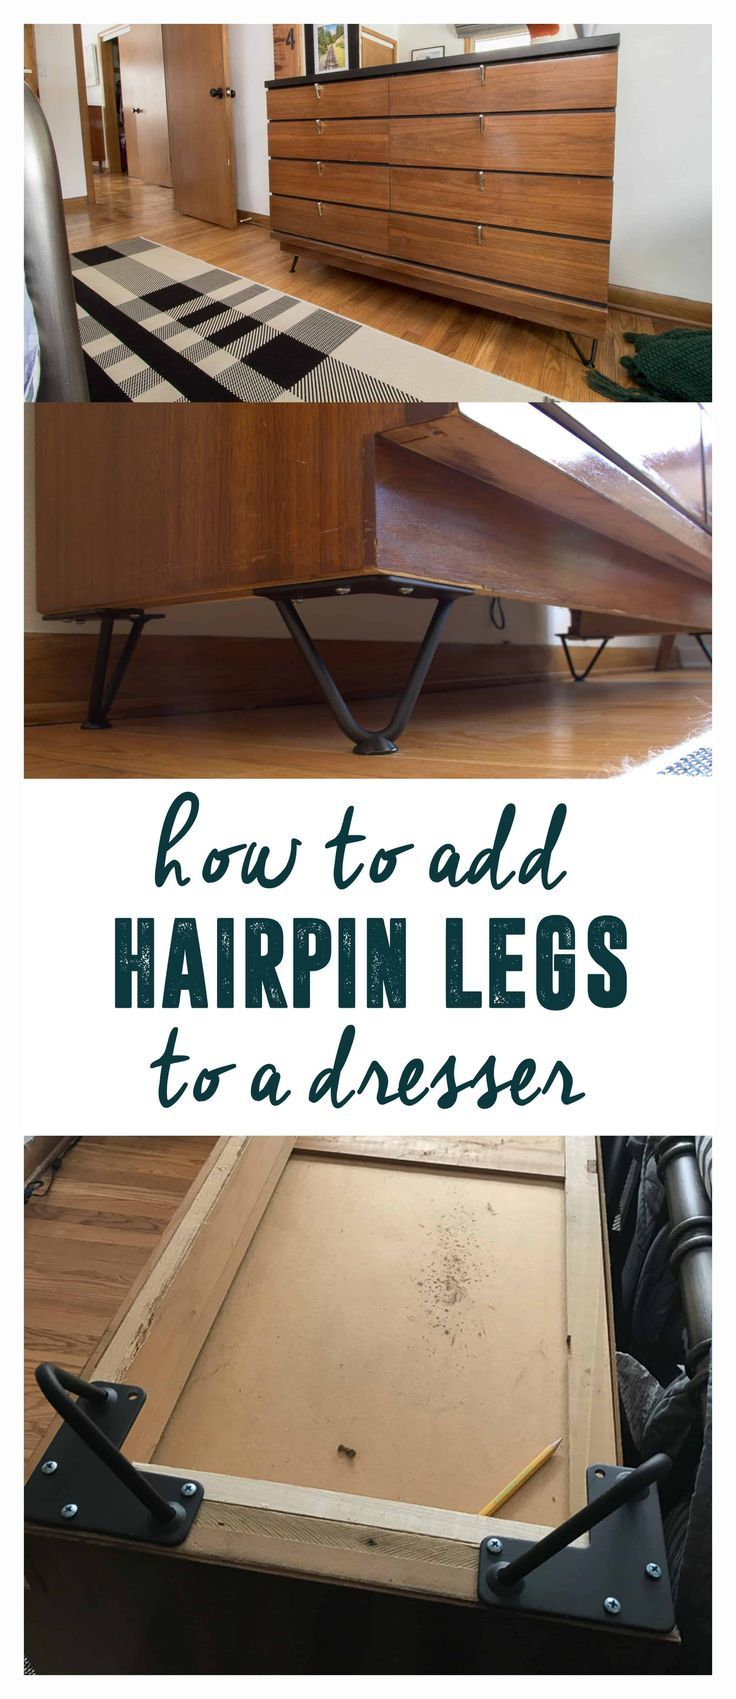 """How to Add Hairpin Legs to a Dresser, Add legs to a dresser, How to Add legs to a Dresser, Short Hairpin Legs, 4"""" Hairpin Legs, How to install hairpin legs on a dresser, Vintage Dresser with Hairpin Legs,"""